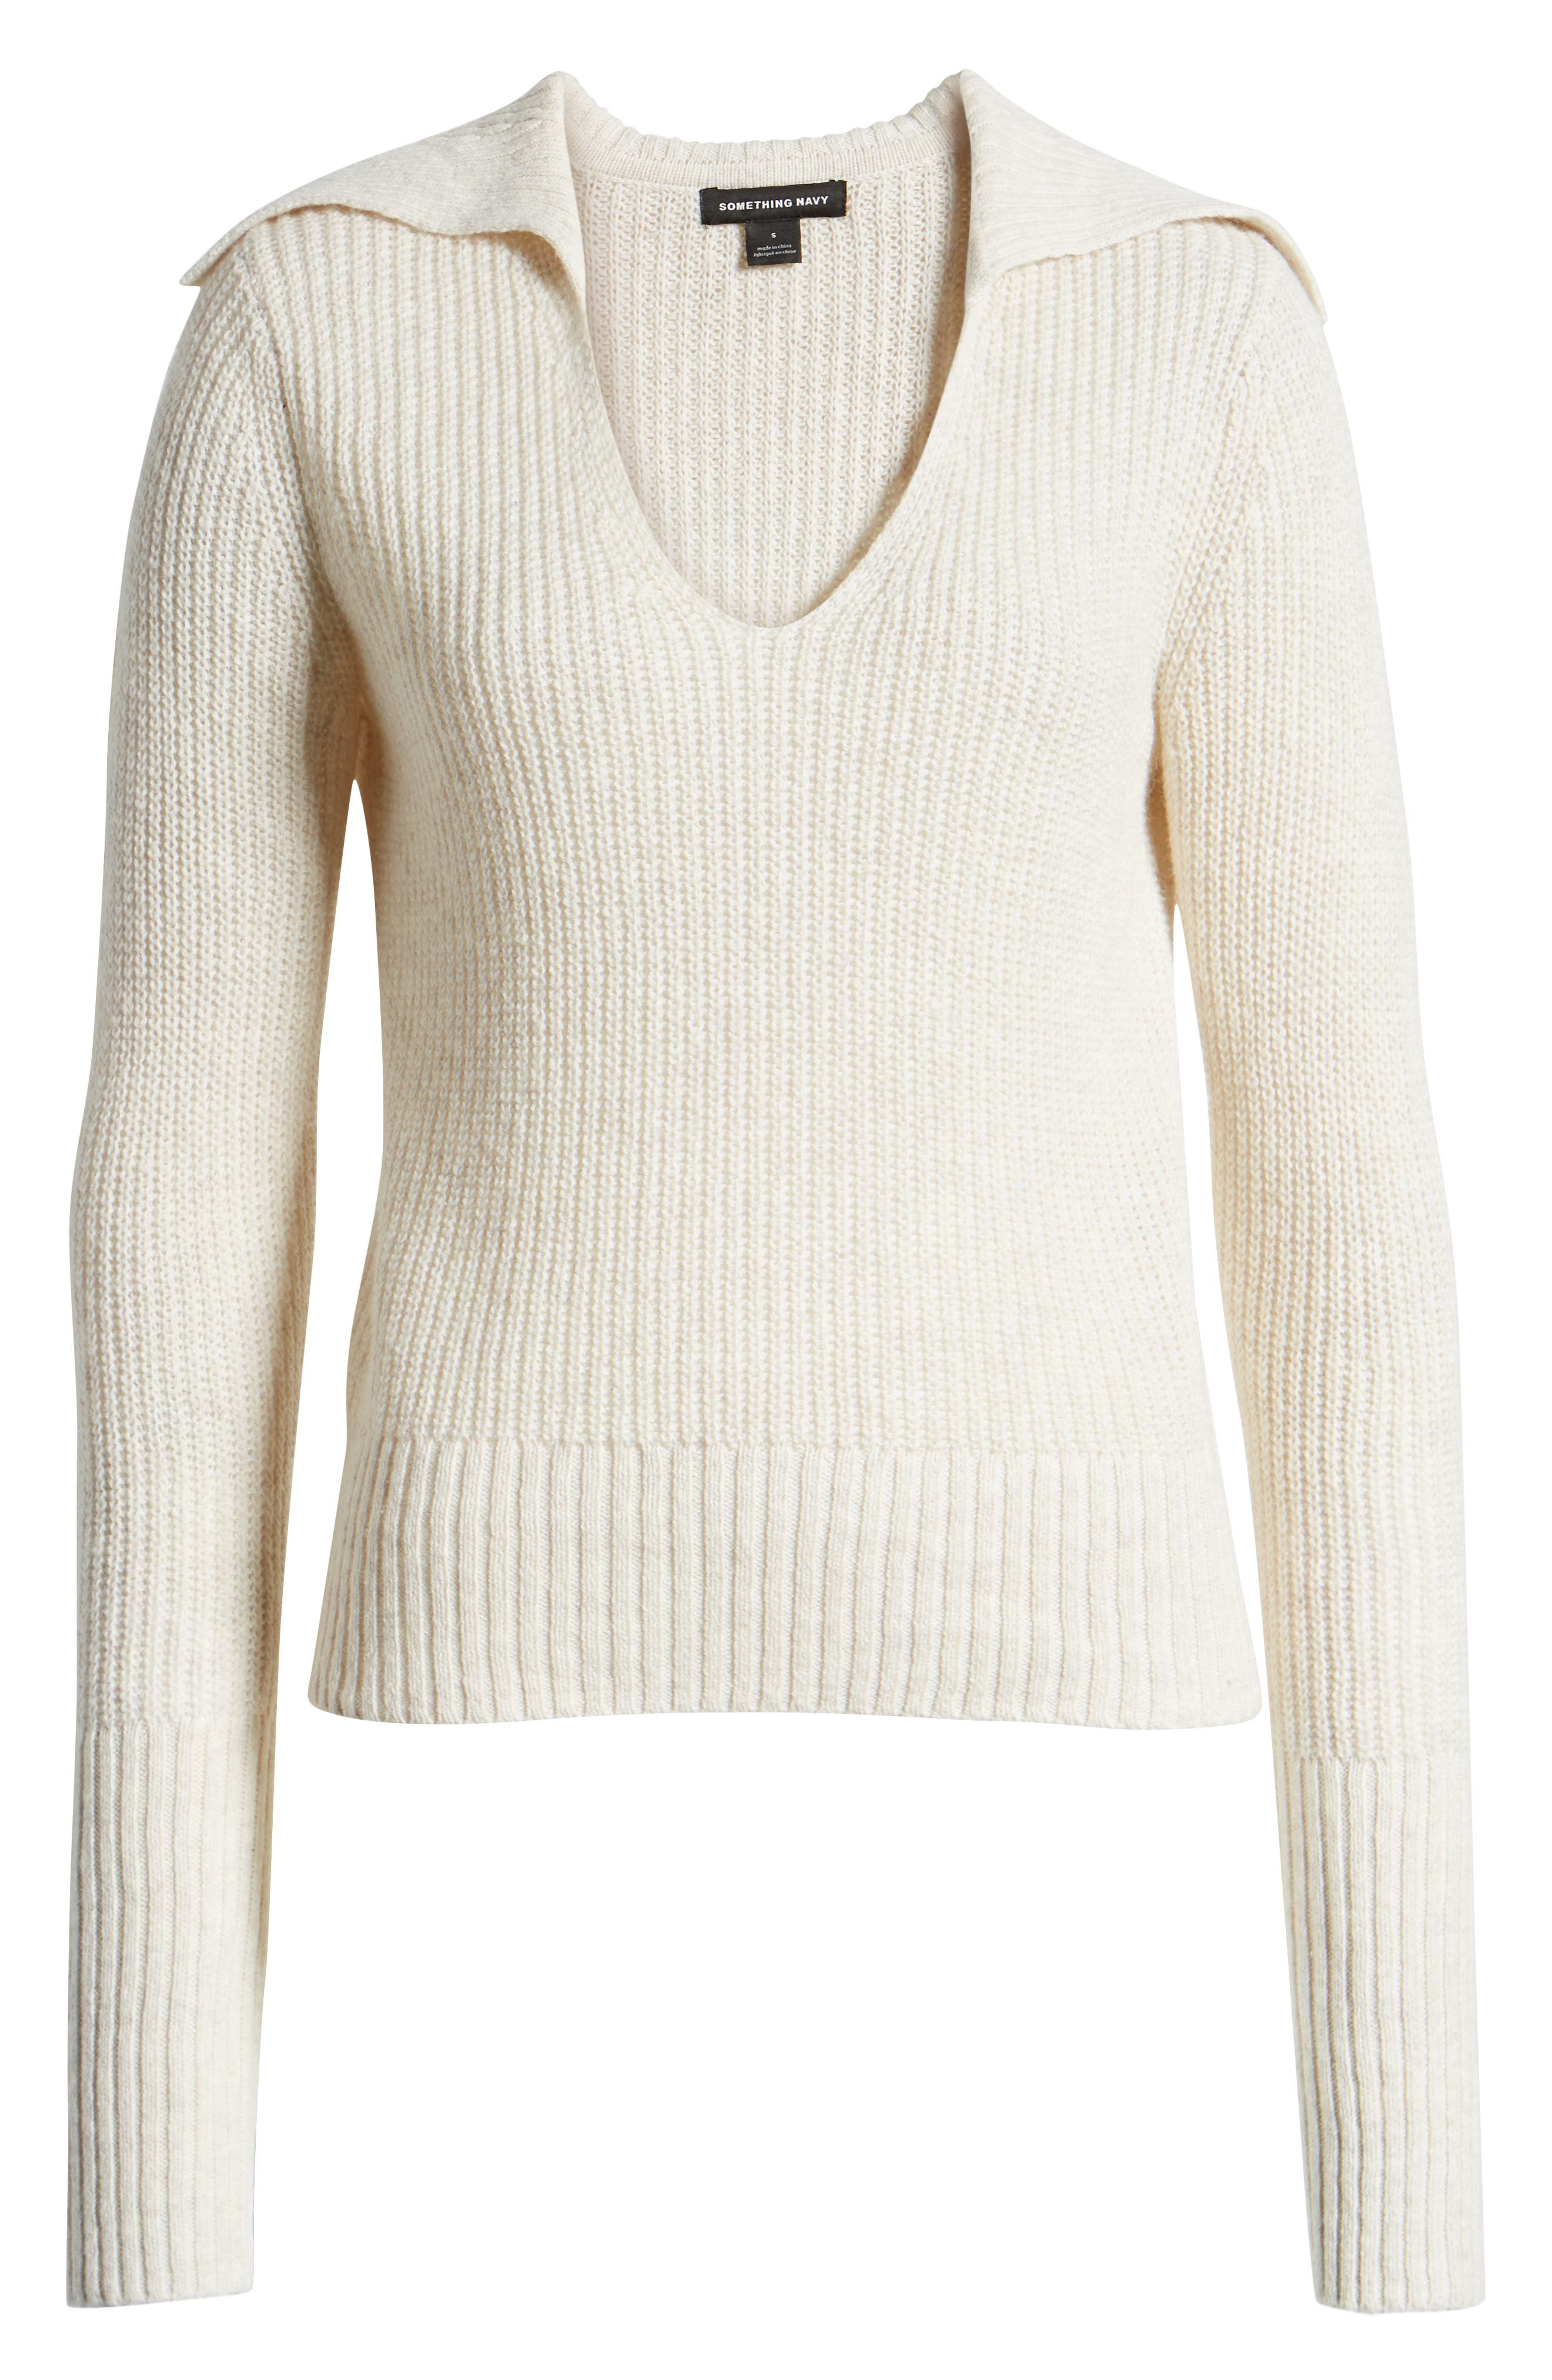 SOMETHING NAVY, V-Neck Polo Sweater, Alternate thumbnail 8, color, BEIGE OATMEAL LIGHT HEATHER